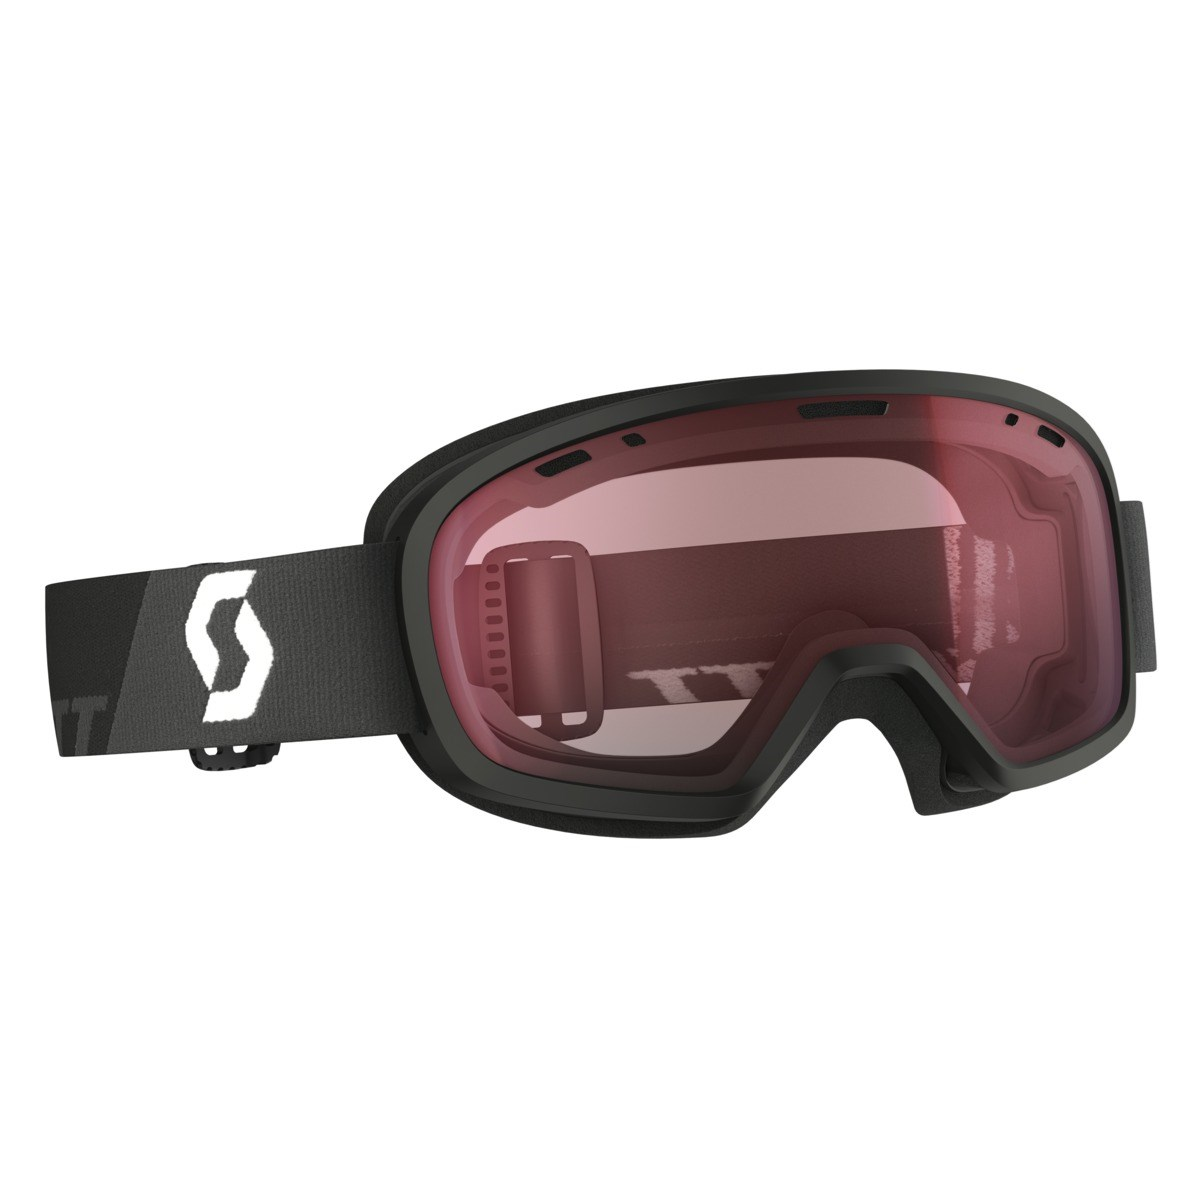 b6e6a660294f Scott Buzz Pro Junior OTG Ski Goggles Black Amplifier. 0 (Be the first to  add a review!)